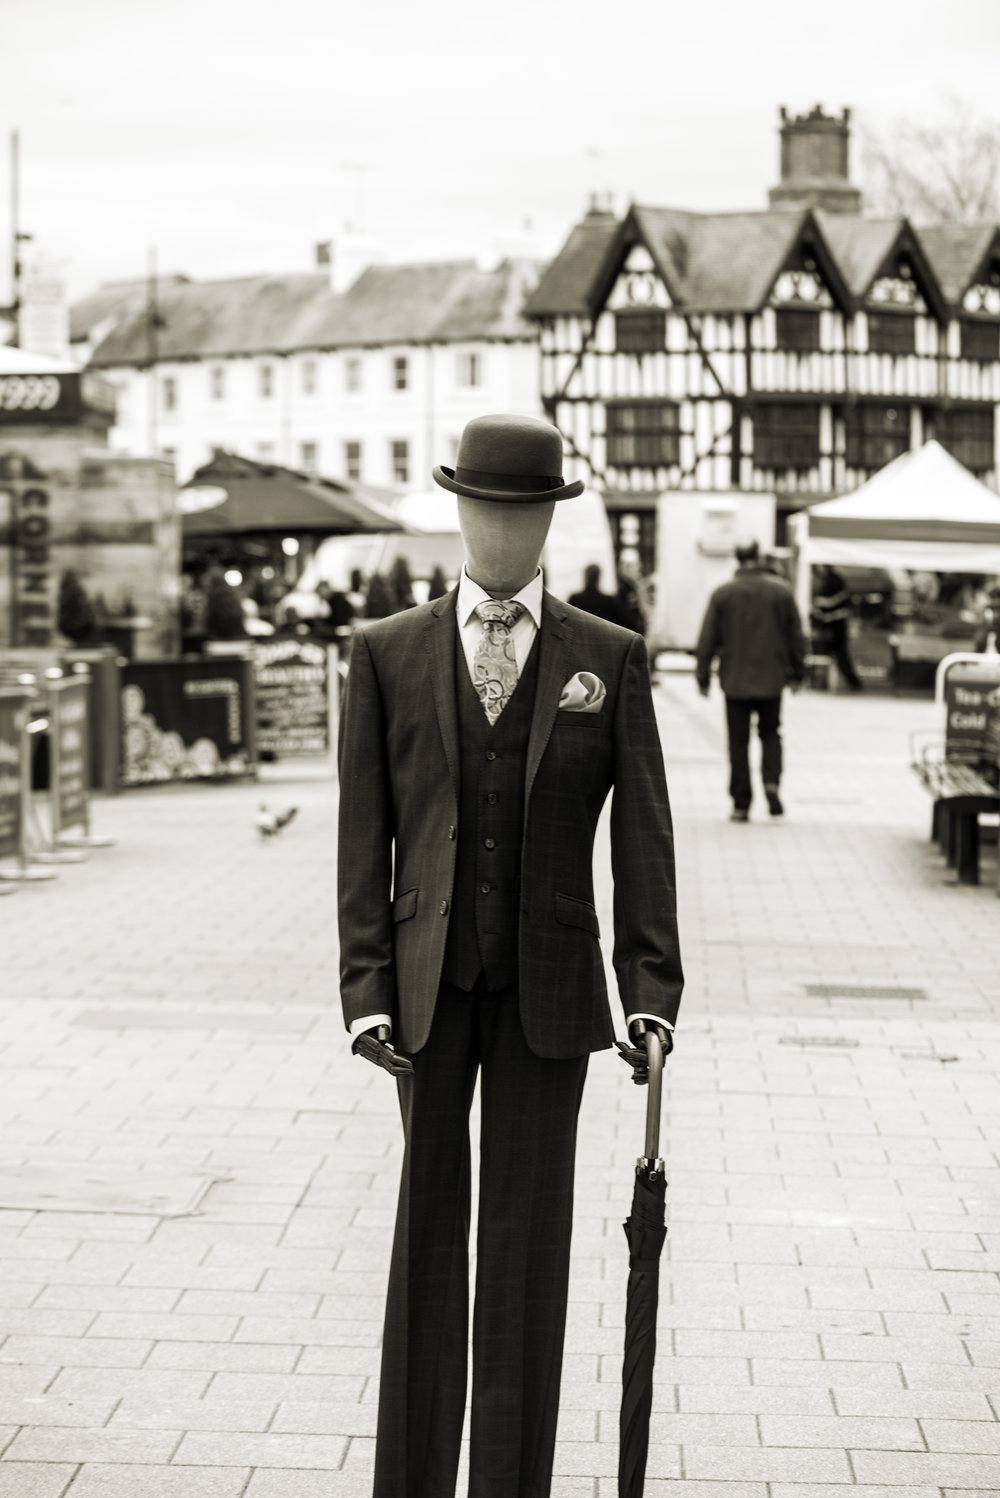 Shop dummy in grey suit in Hereford.jpg